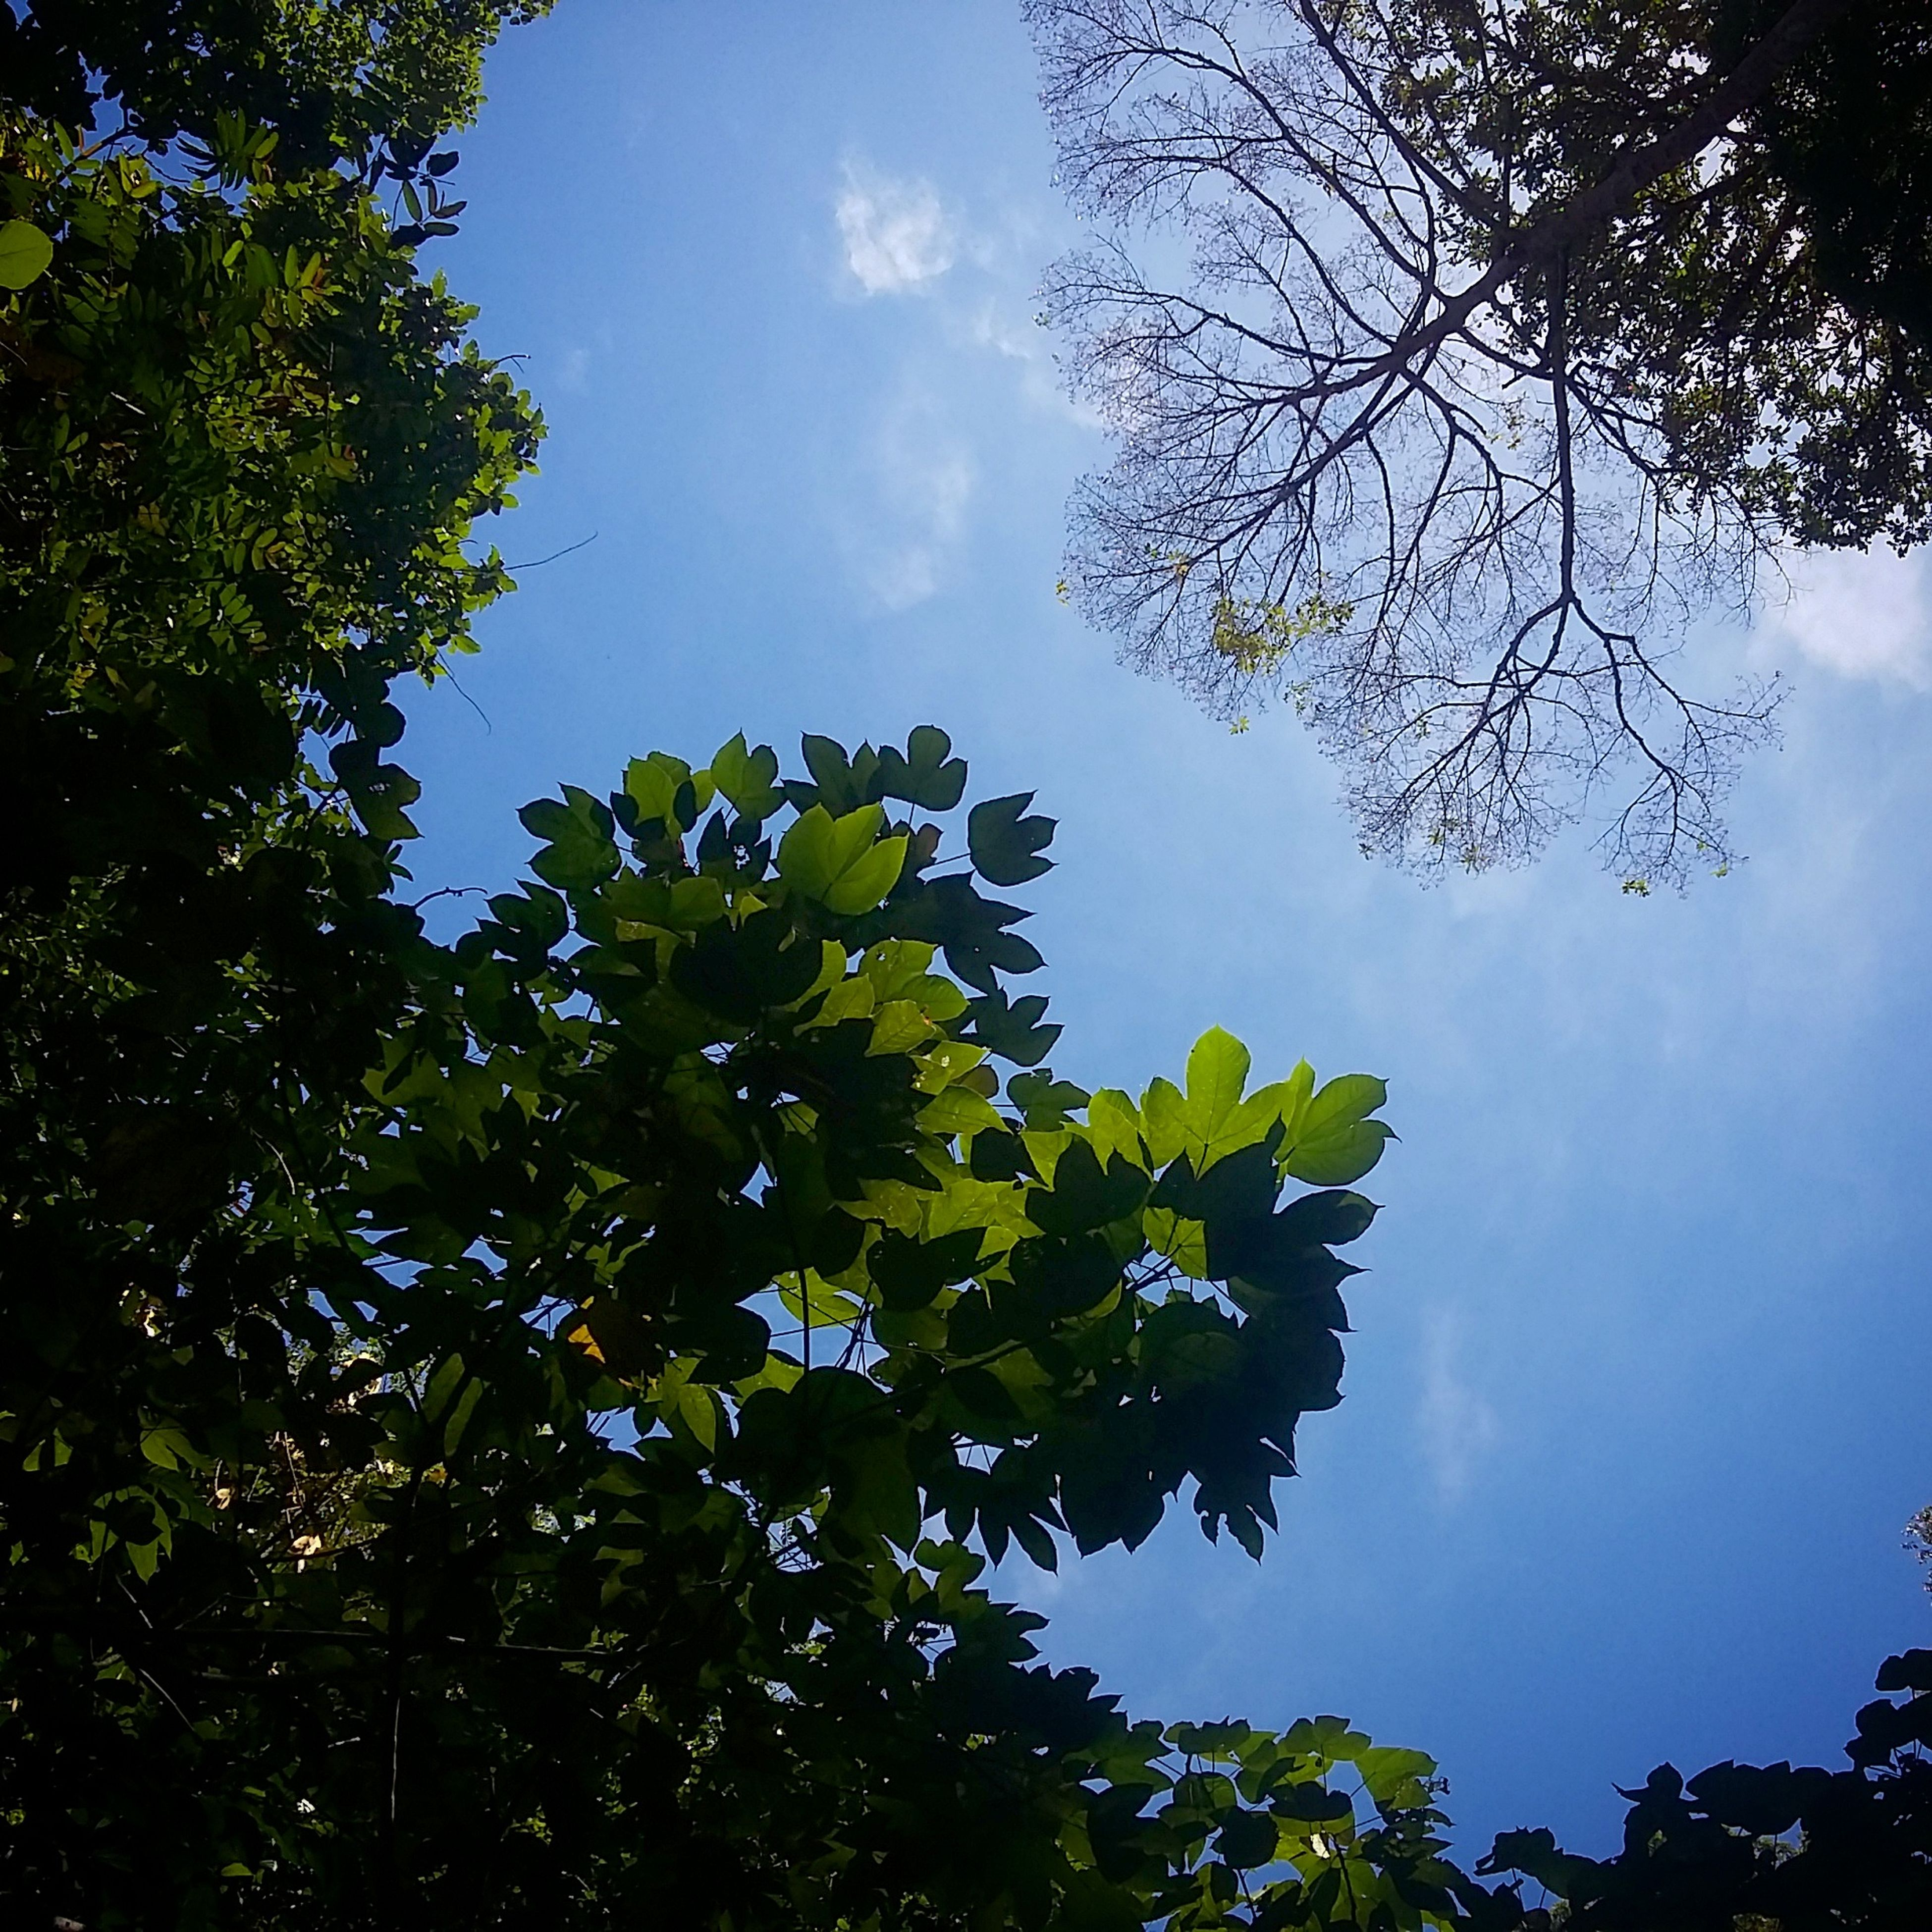 tree, low angle view, sky, branch, growth, cloud - sky, tranquility, nature, beauty in nature, cloud, green color, leaf, scenics, blue, cloudy, tranquil scene, outdoors, no people, day, silhouette